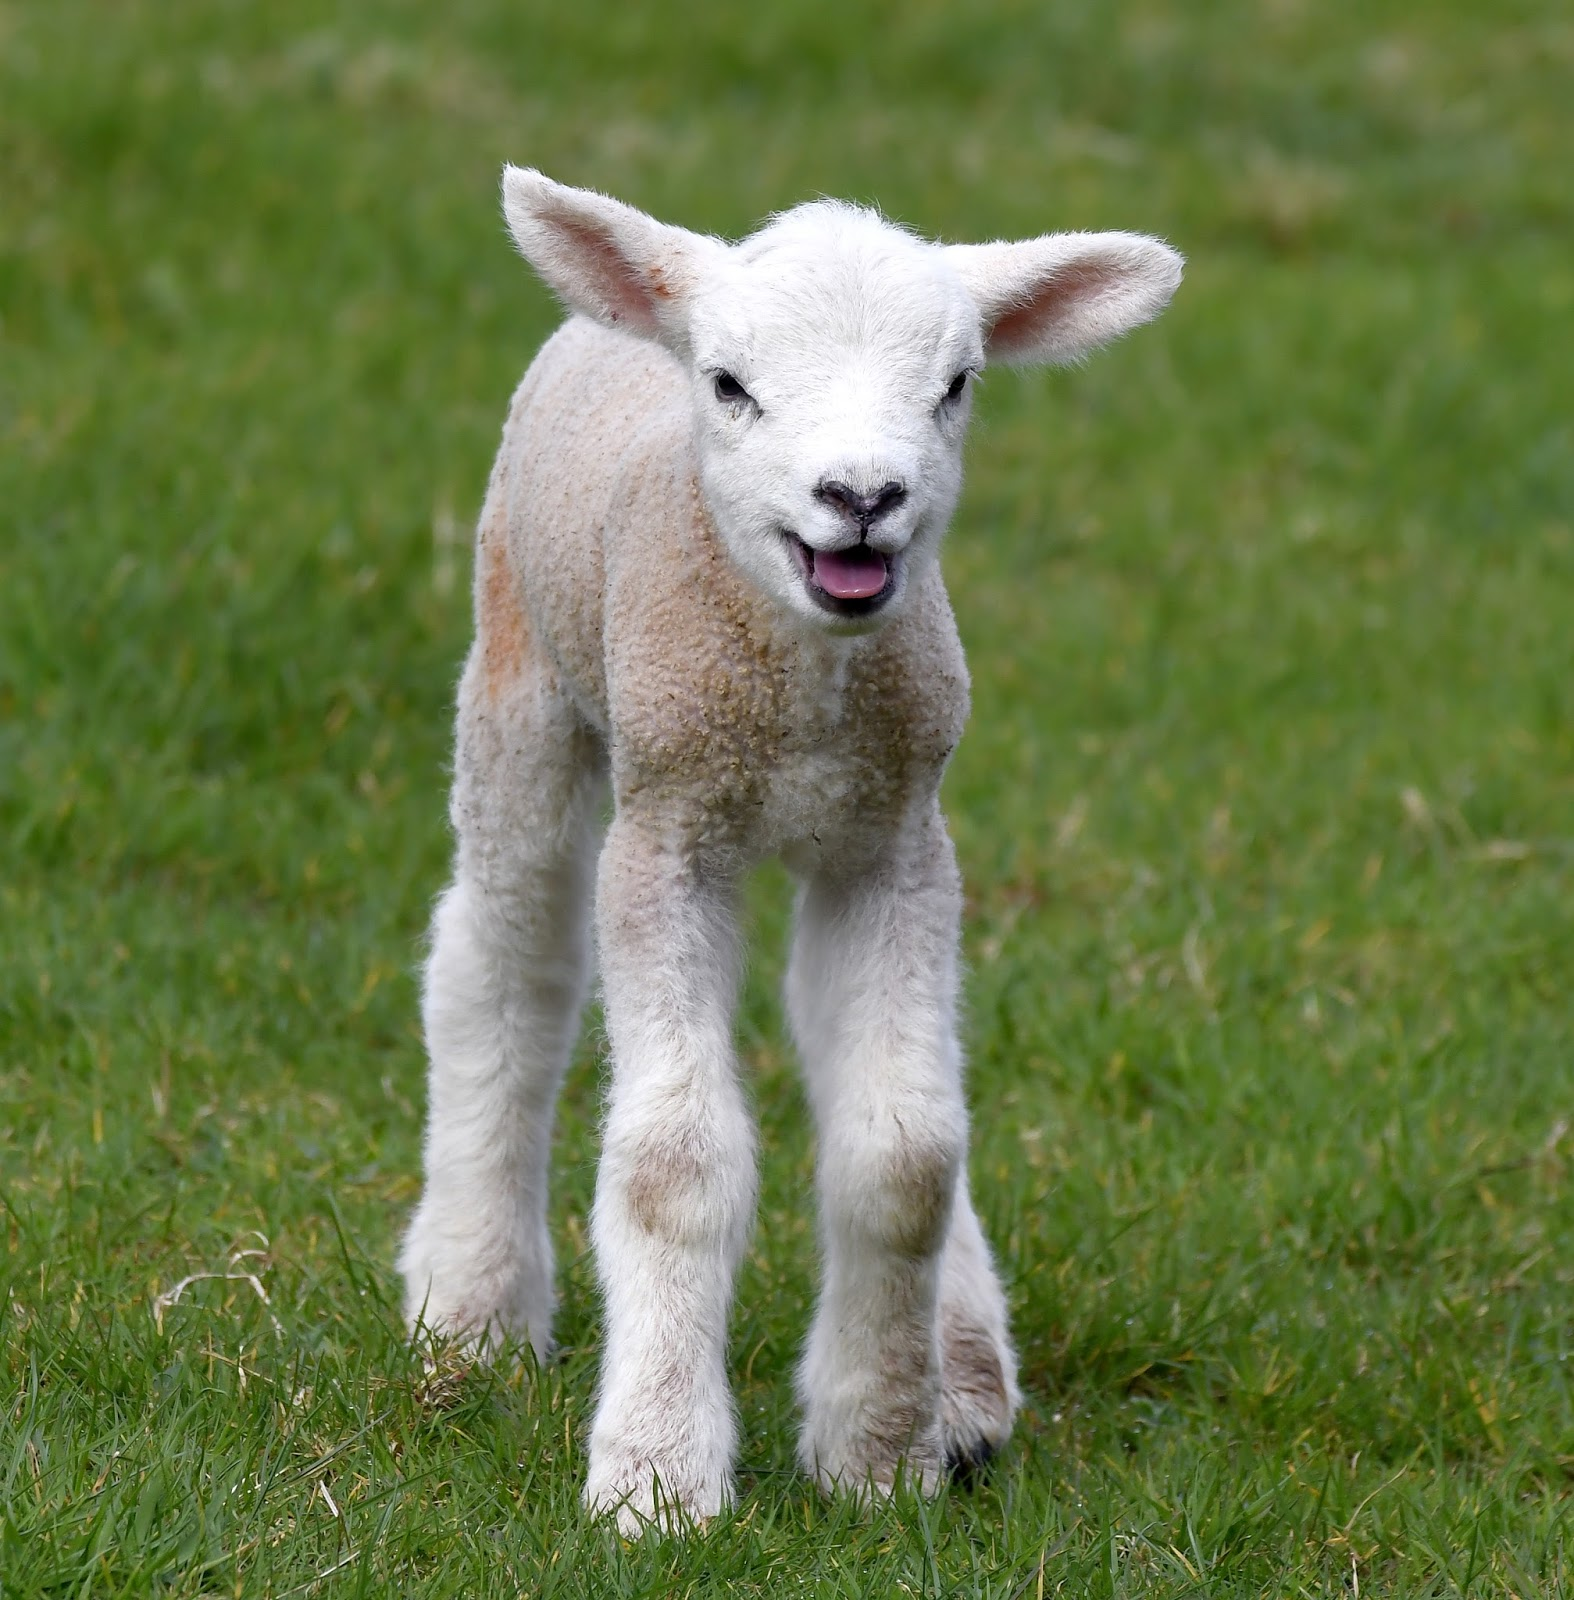 Carl Bovis Nature Photography: Cute March Lambs!!